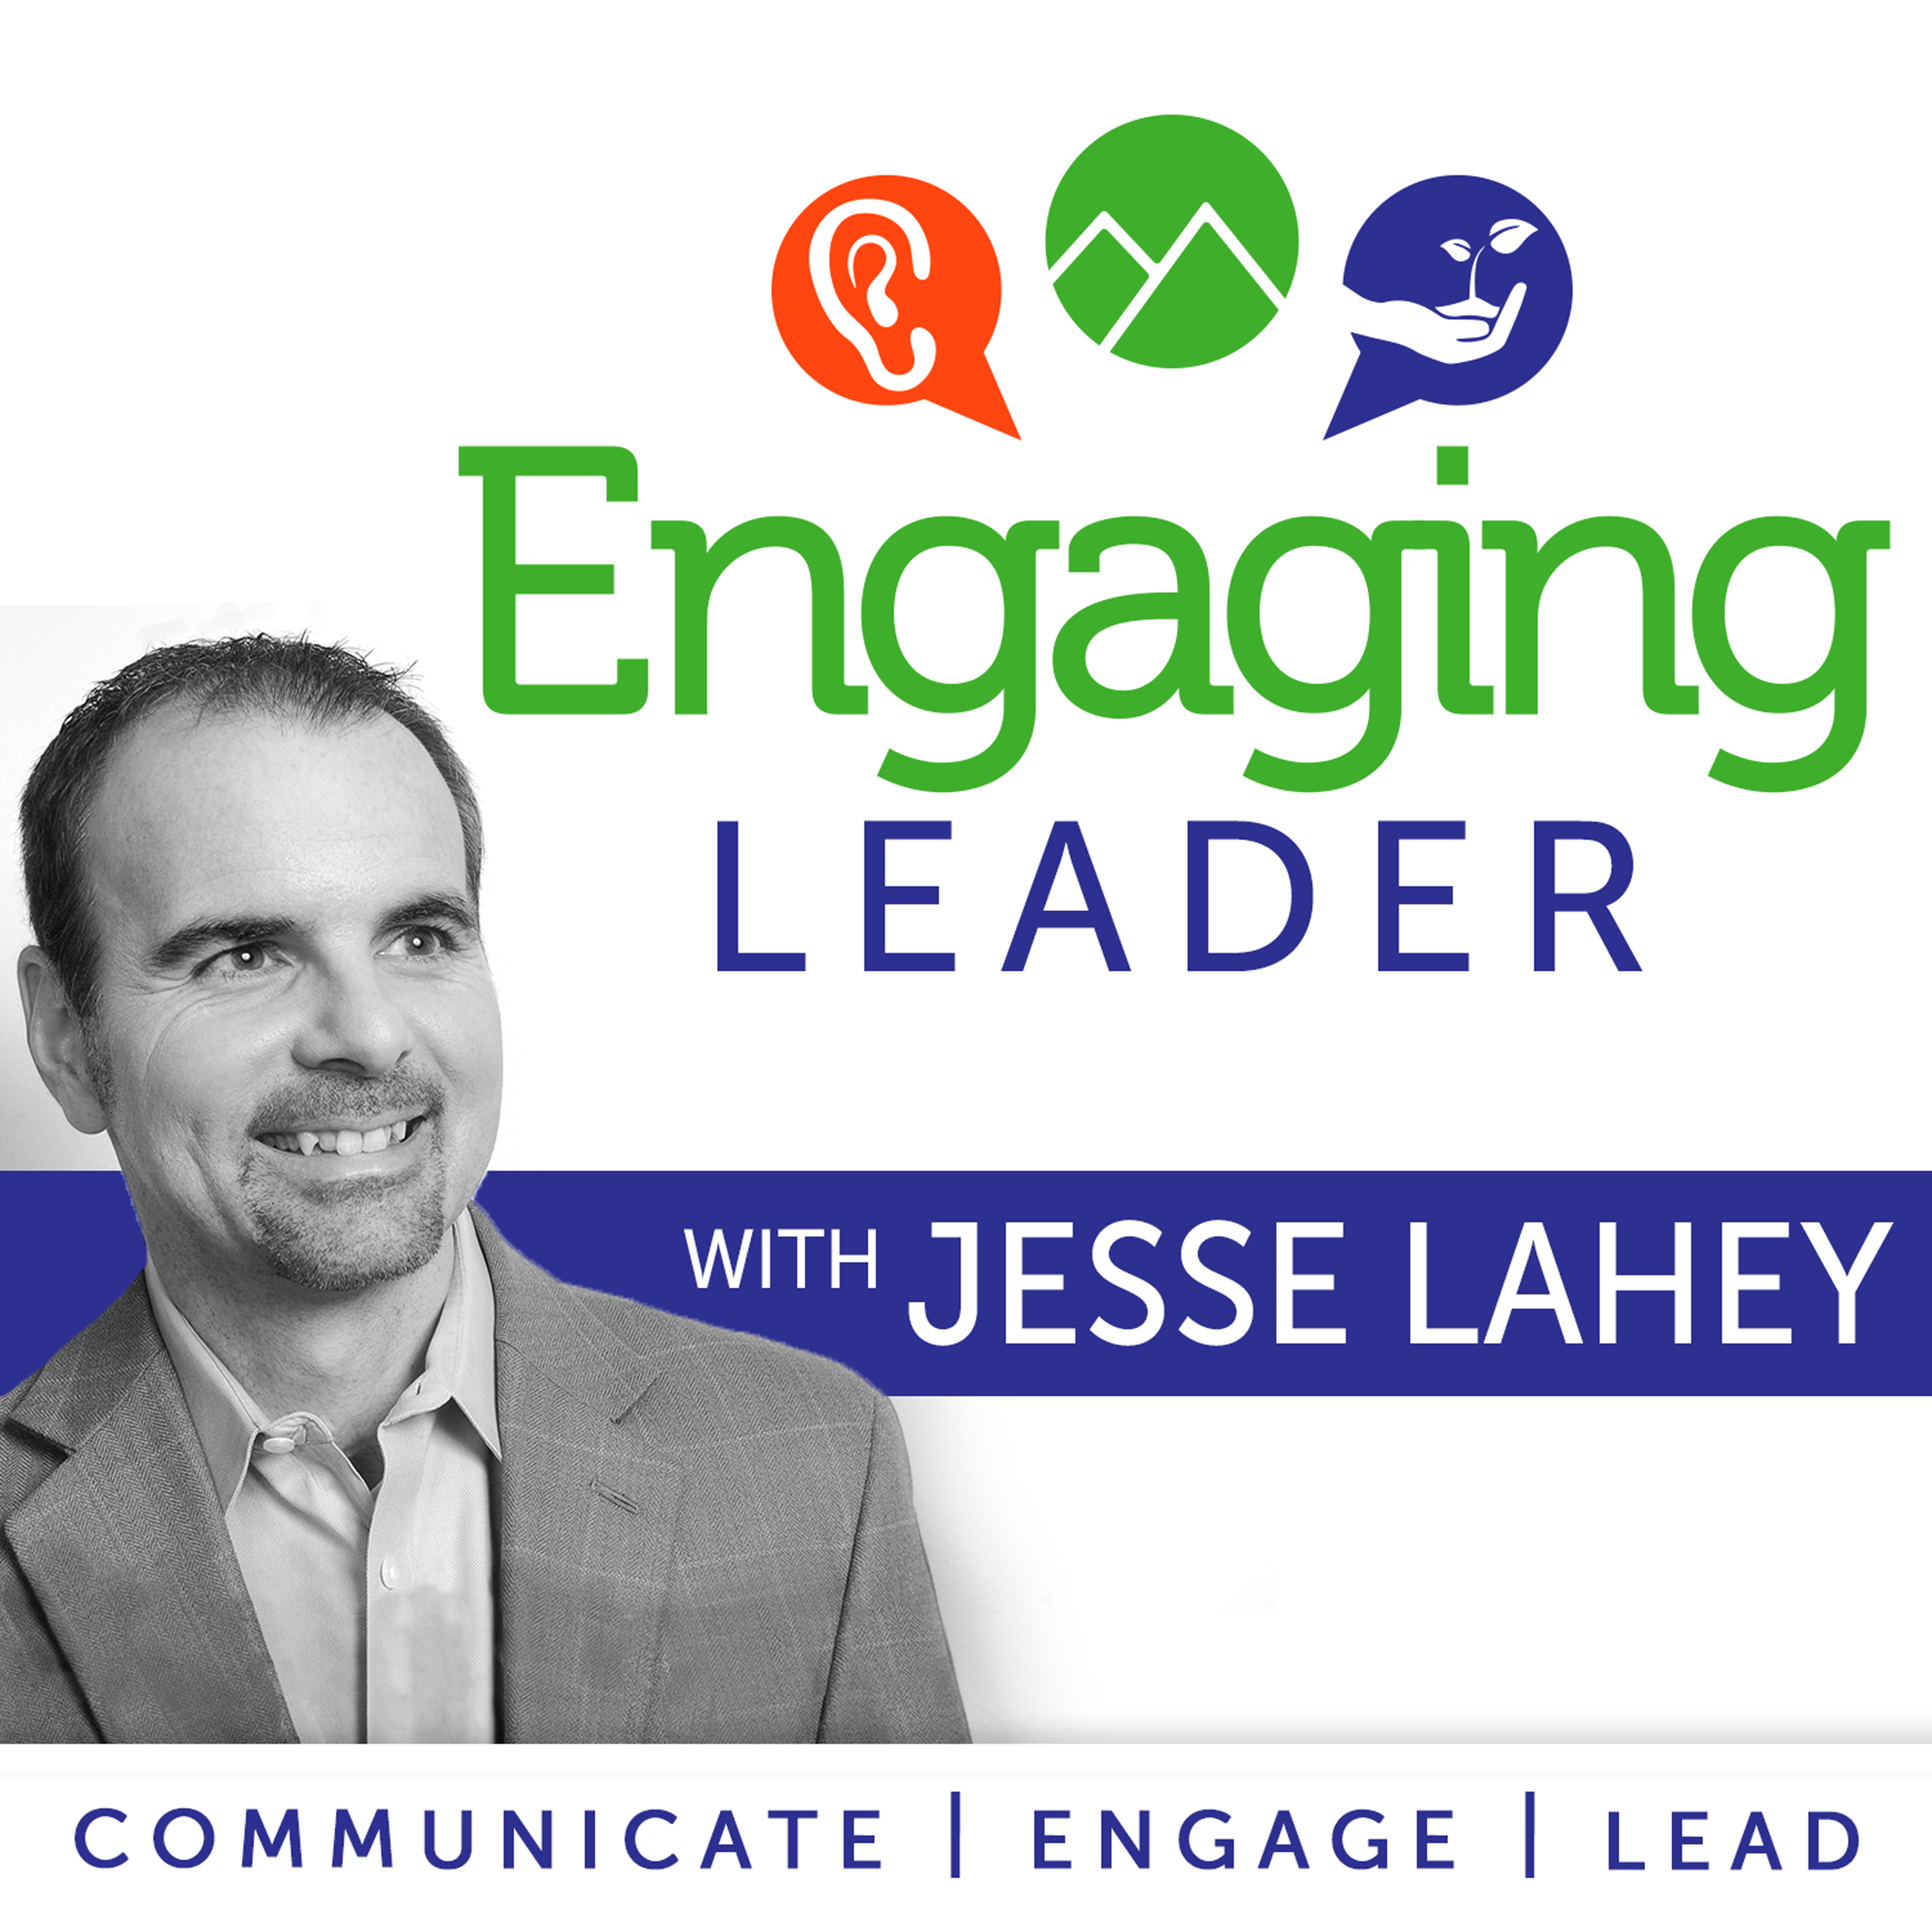 Podcast | Engaging Leader with Jesse Lahey